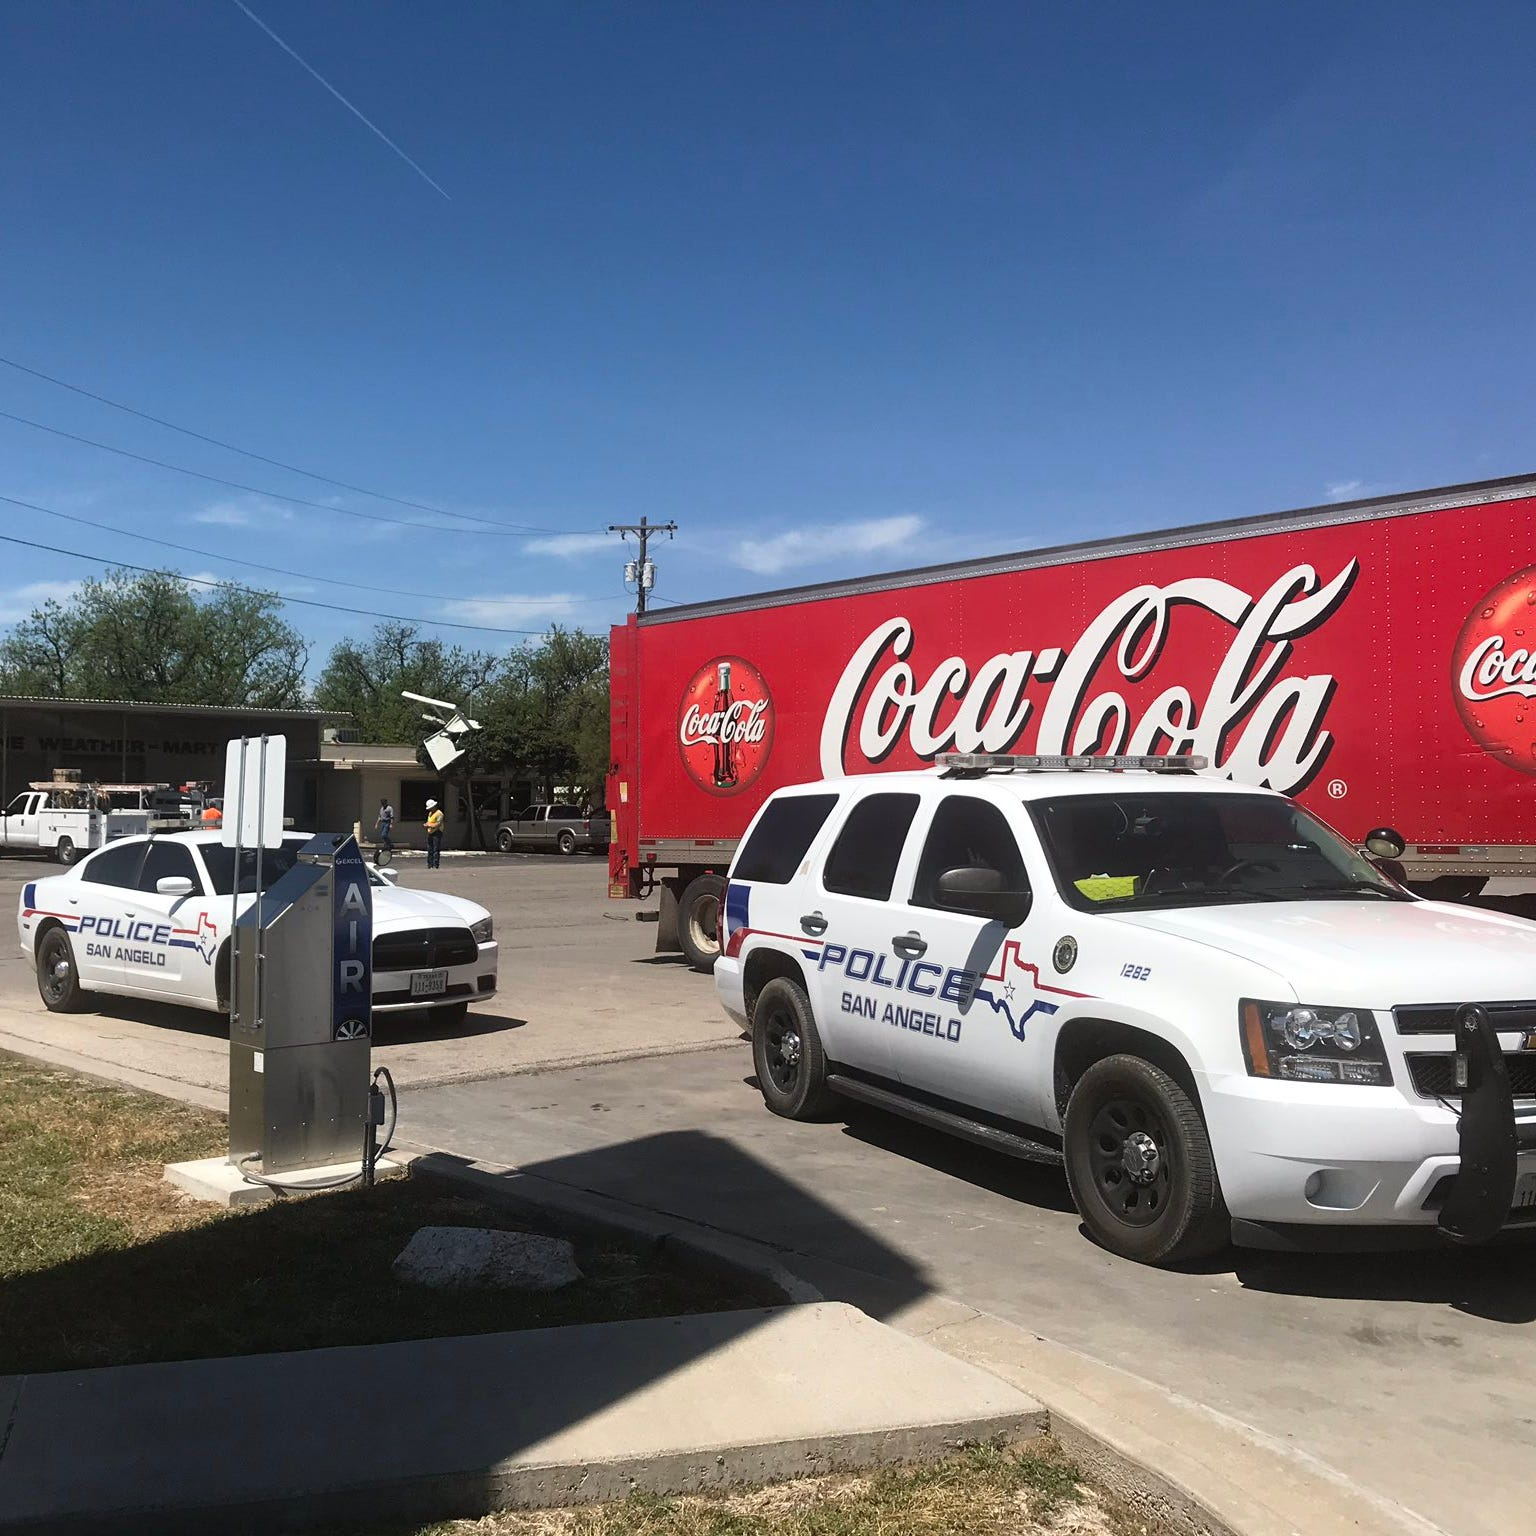 Coca-Cola truck reportedly runs into downed power line in north San Angelo, AEP on scene